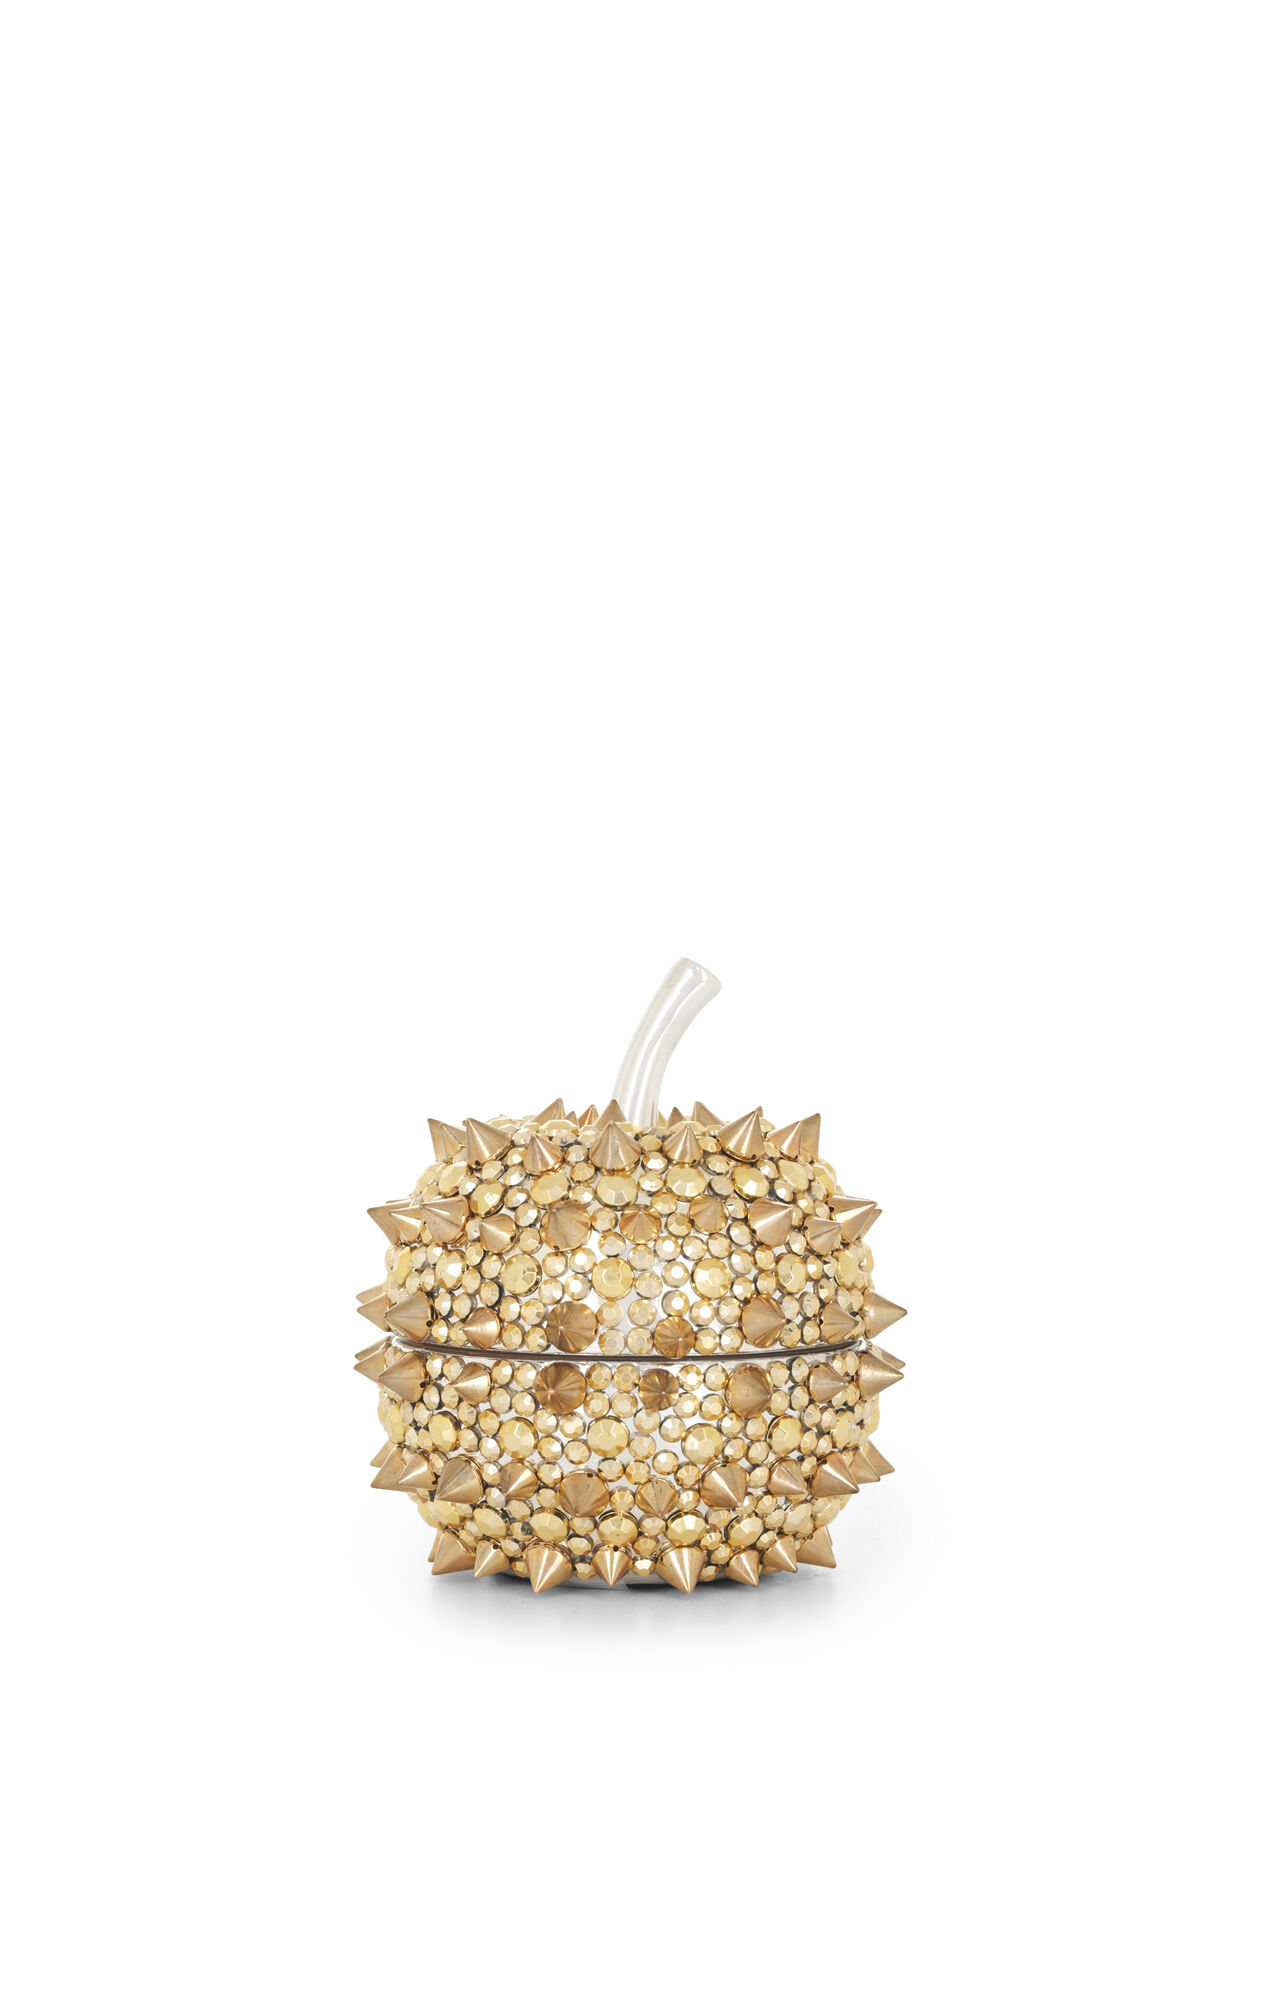 Spiked Apple Jewelry Box